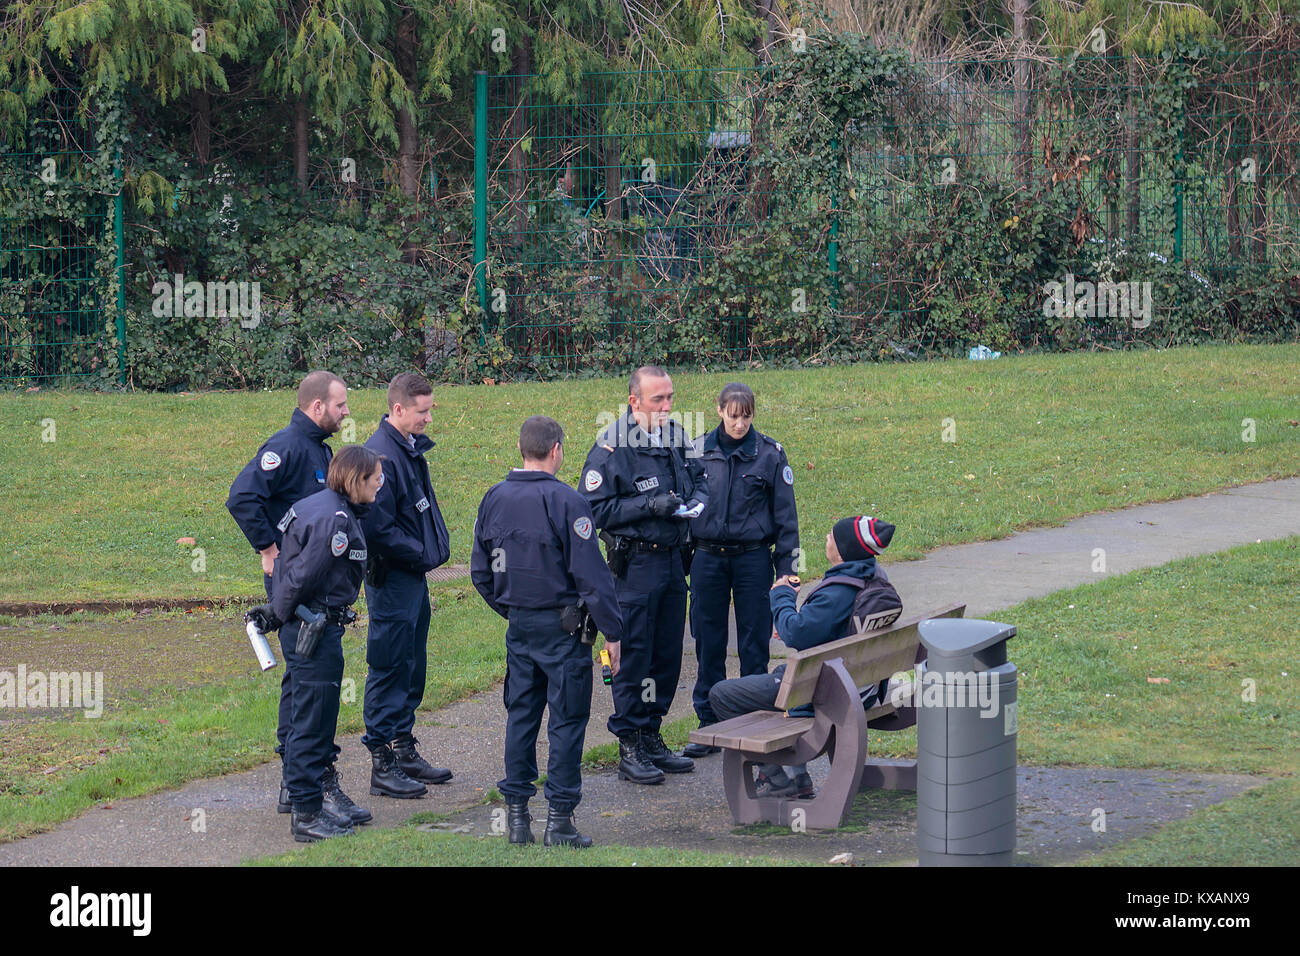 Armed French Police Speaking To A Drunken Man In Gonfreville L'Orcher, Normandie, France - Stock Image